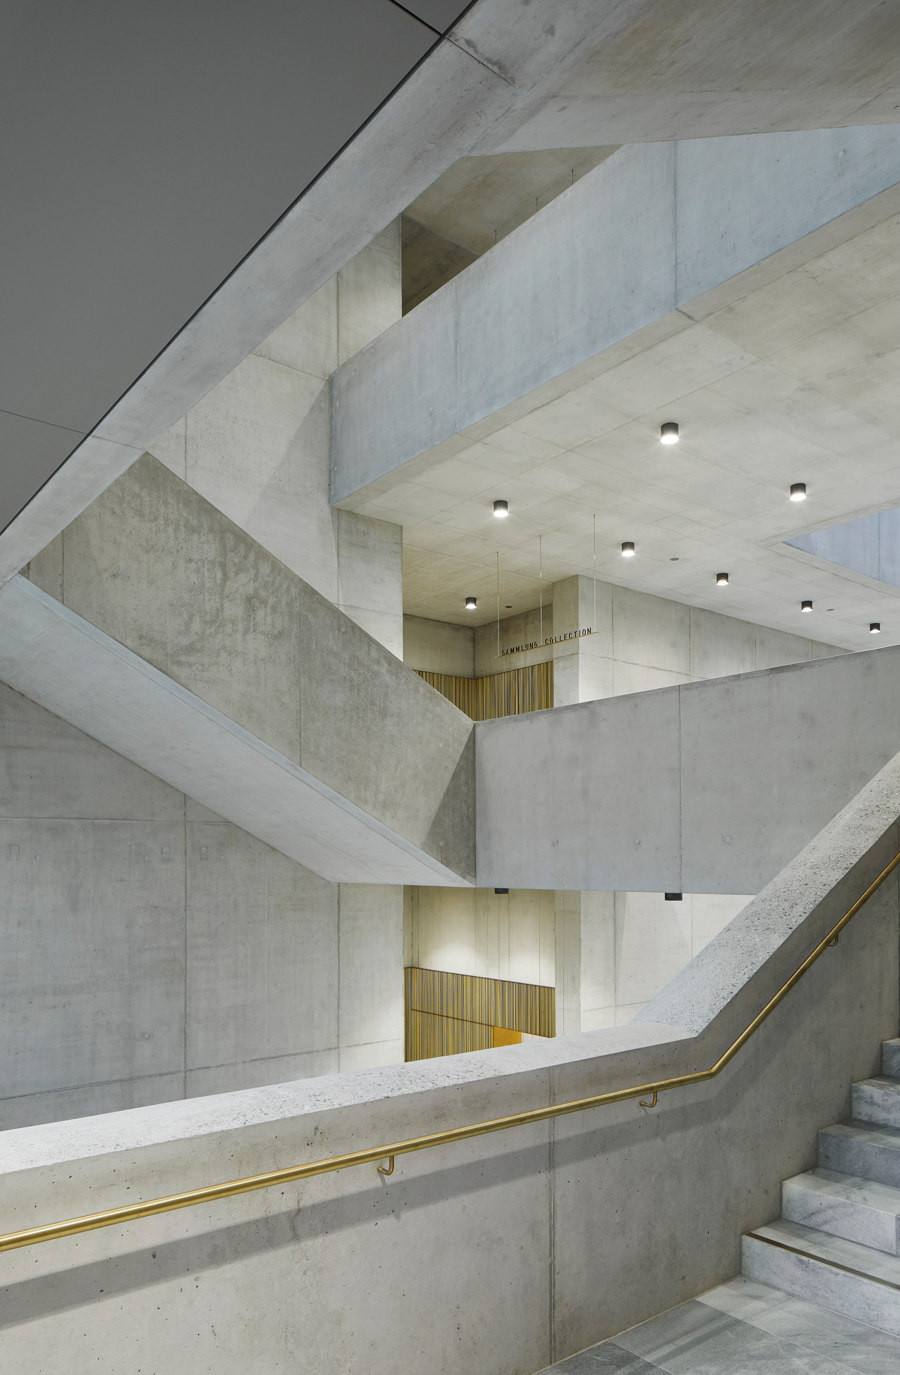 Kunsthaus Zürich by David Chipperfield Architects | Museums